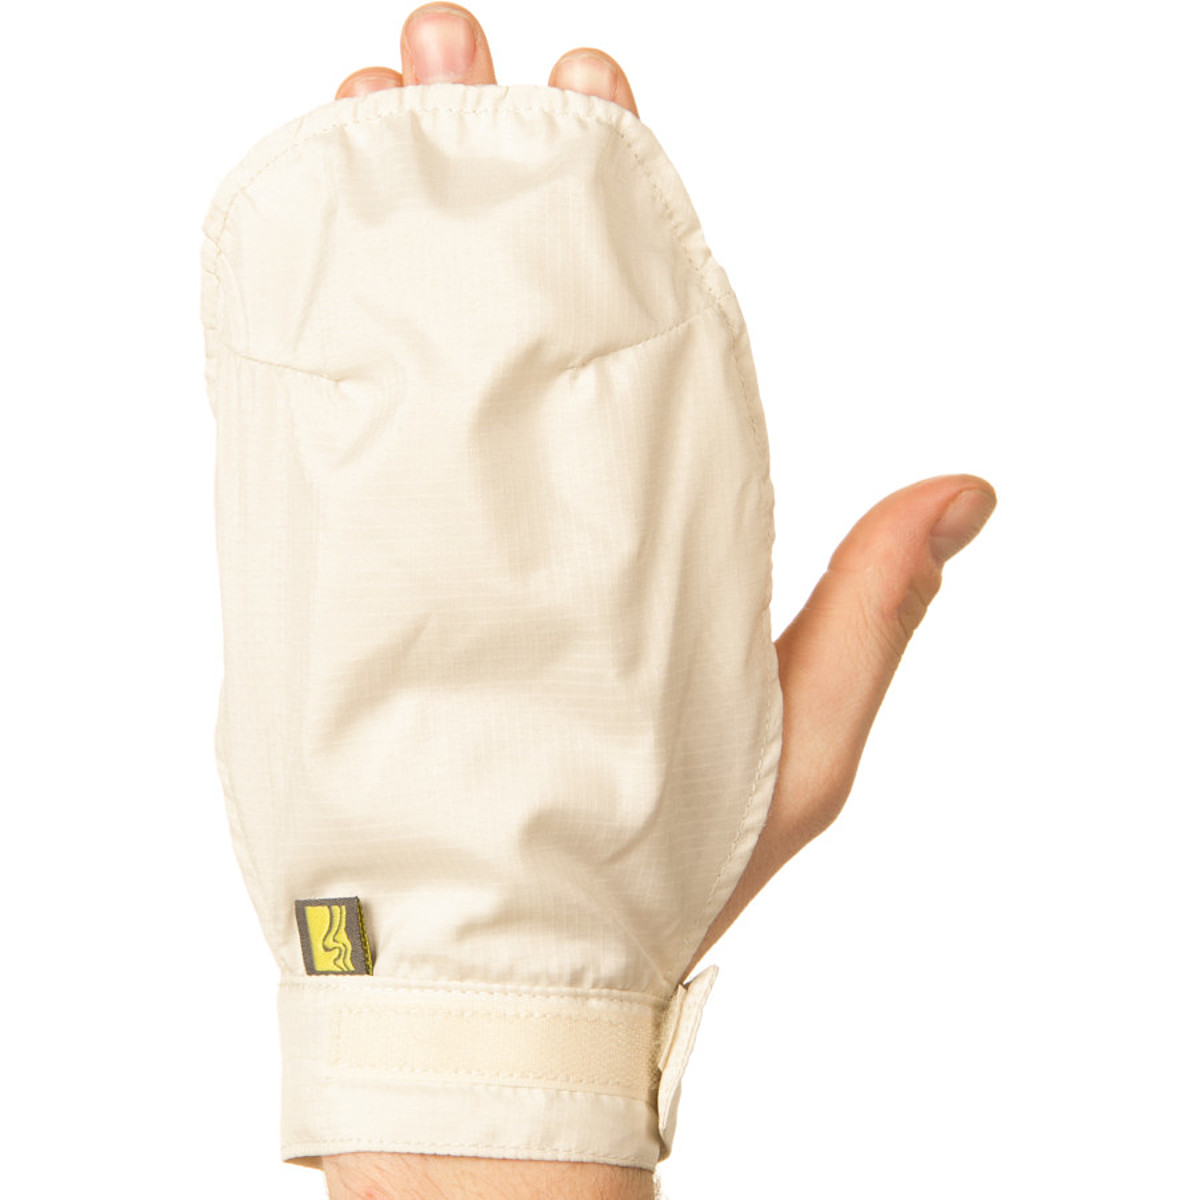 Kokatat Hand Covers